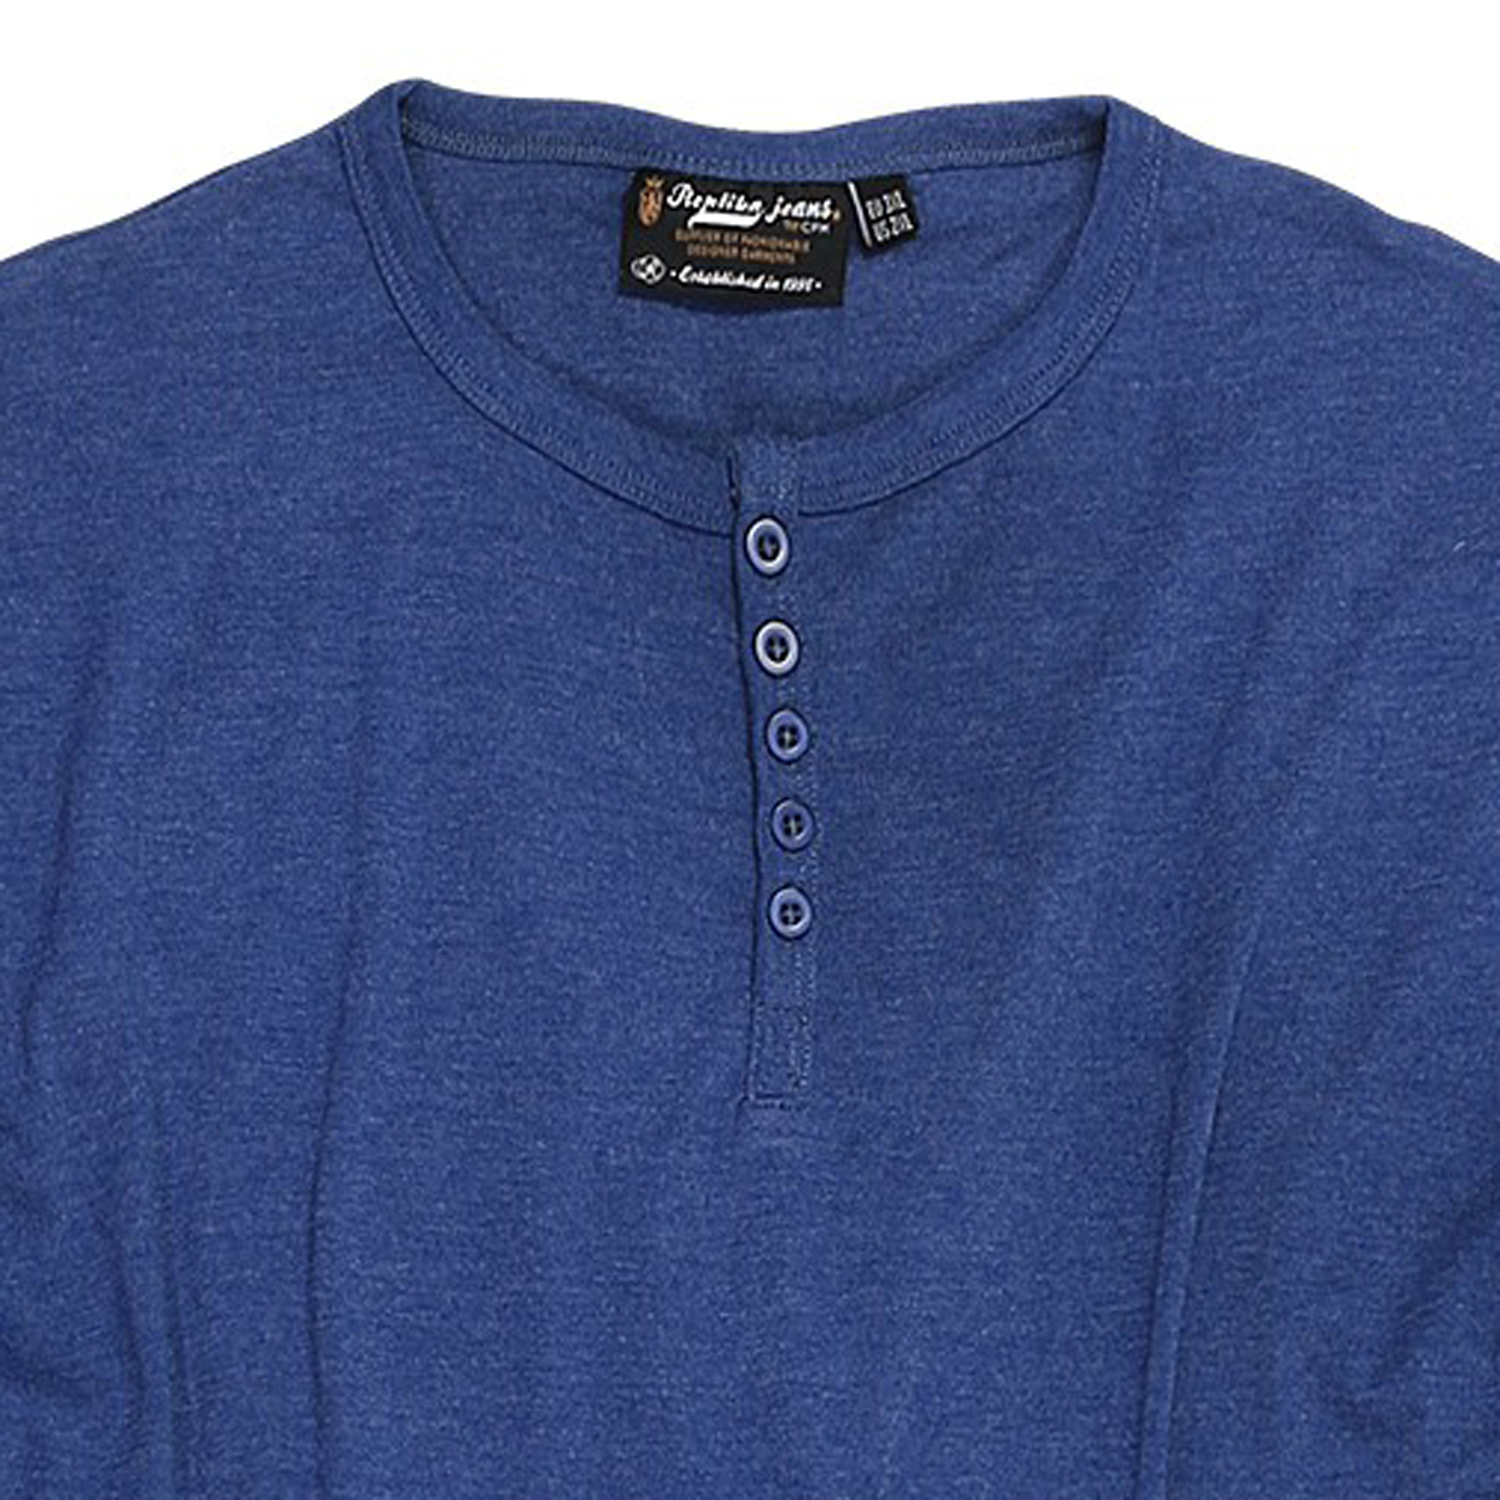 Detail Image to Blue Shirt in oversize up to 8XL